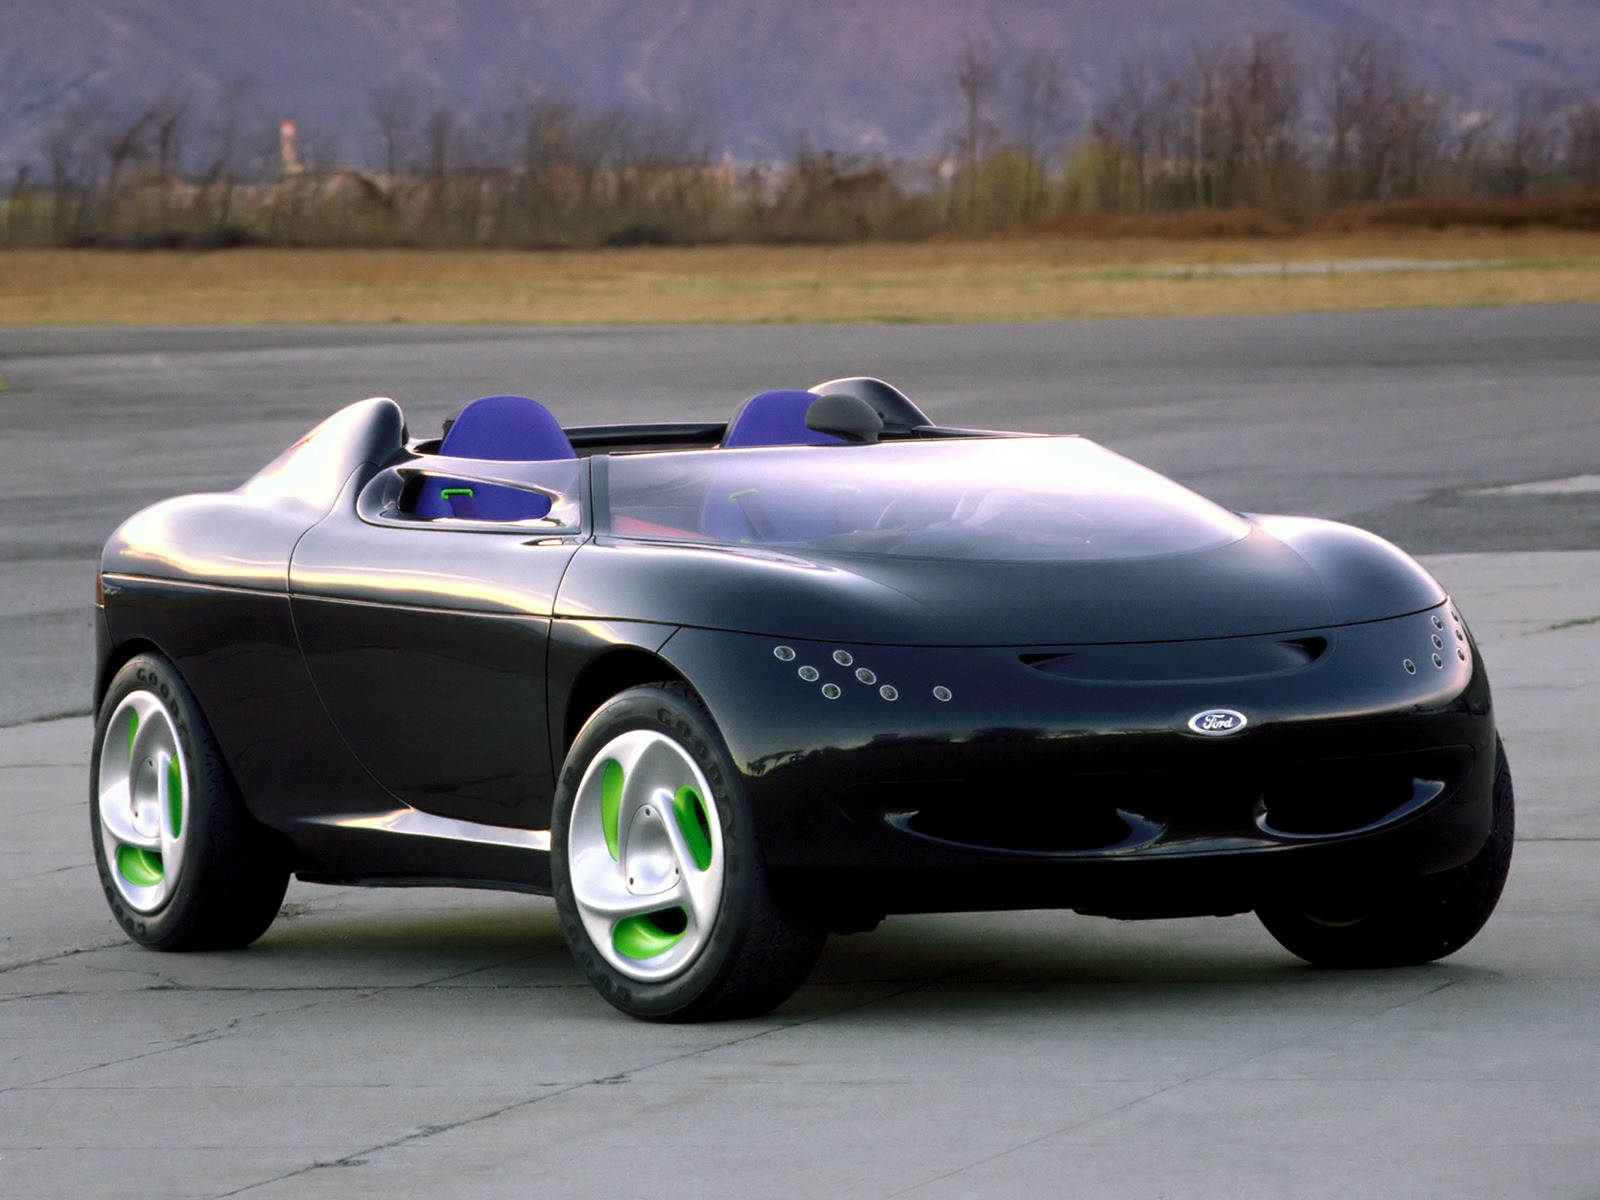 Ford Zig Concept (1990) – Old Concept Cars